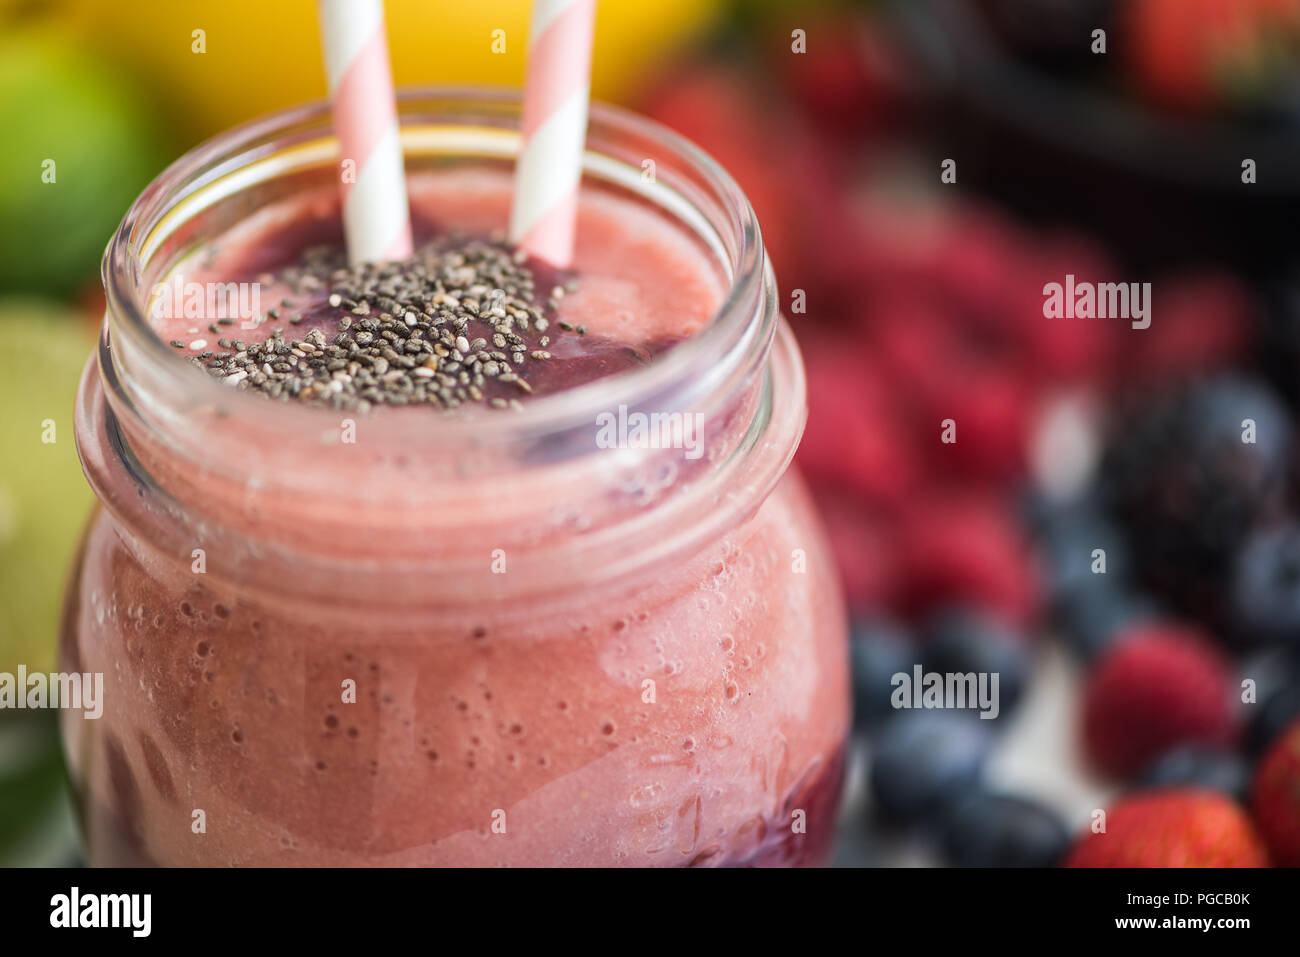 Detail of Fresh Smoothie with Fruit in Background - Stock Image